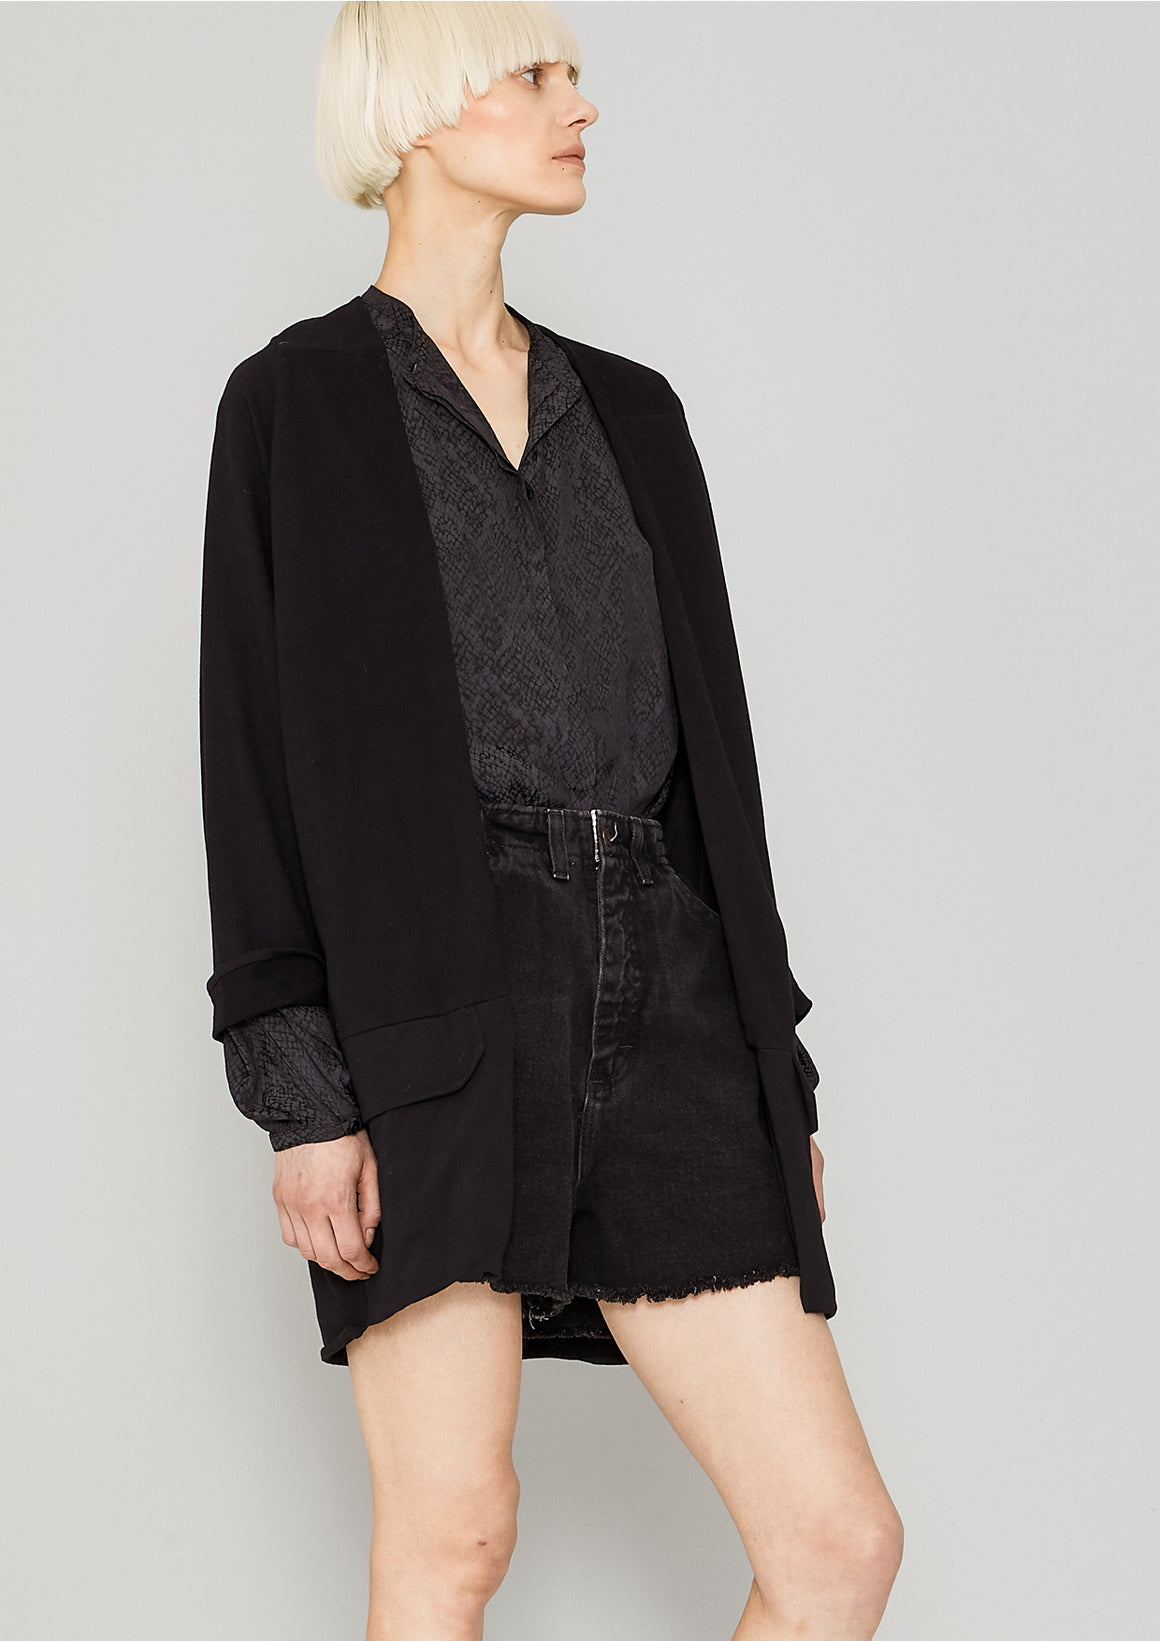 CARDIGAN - COTTON JERSEY black